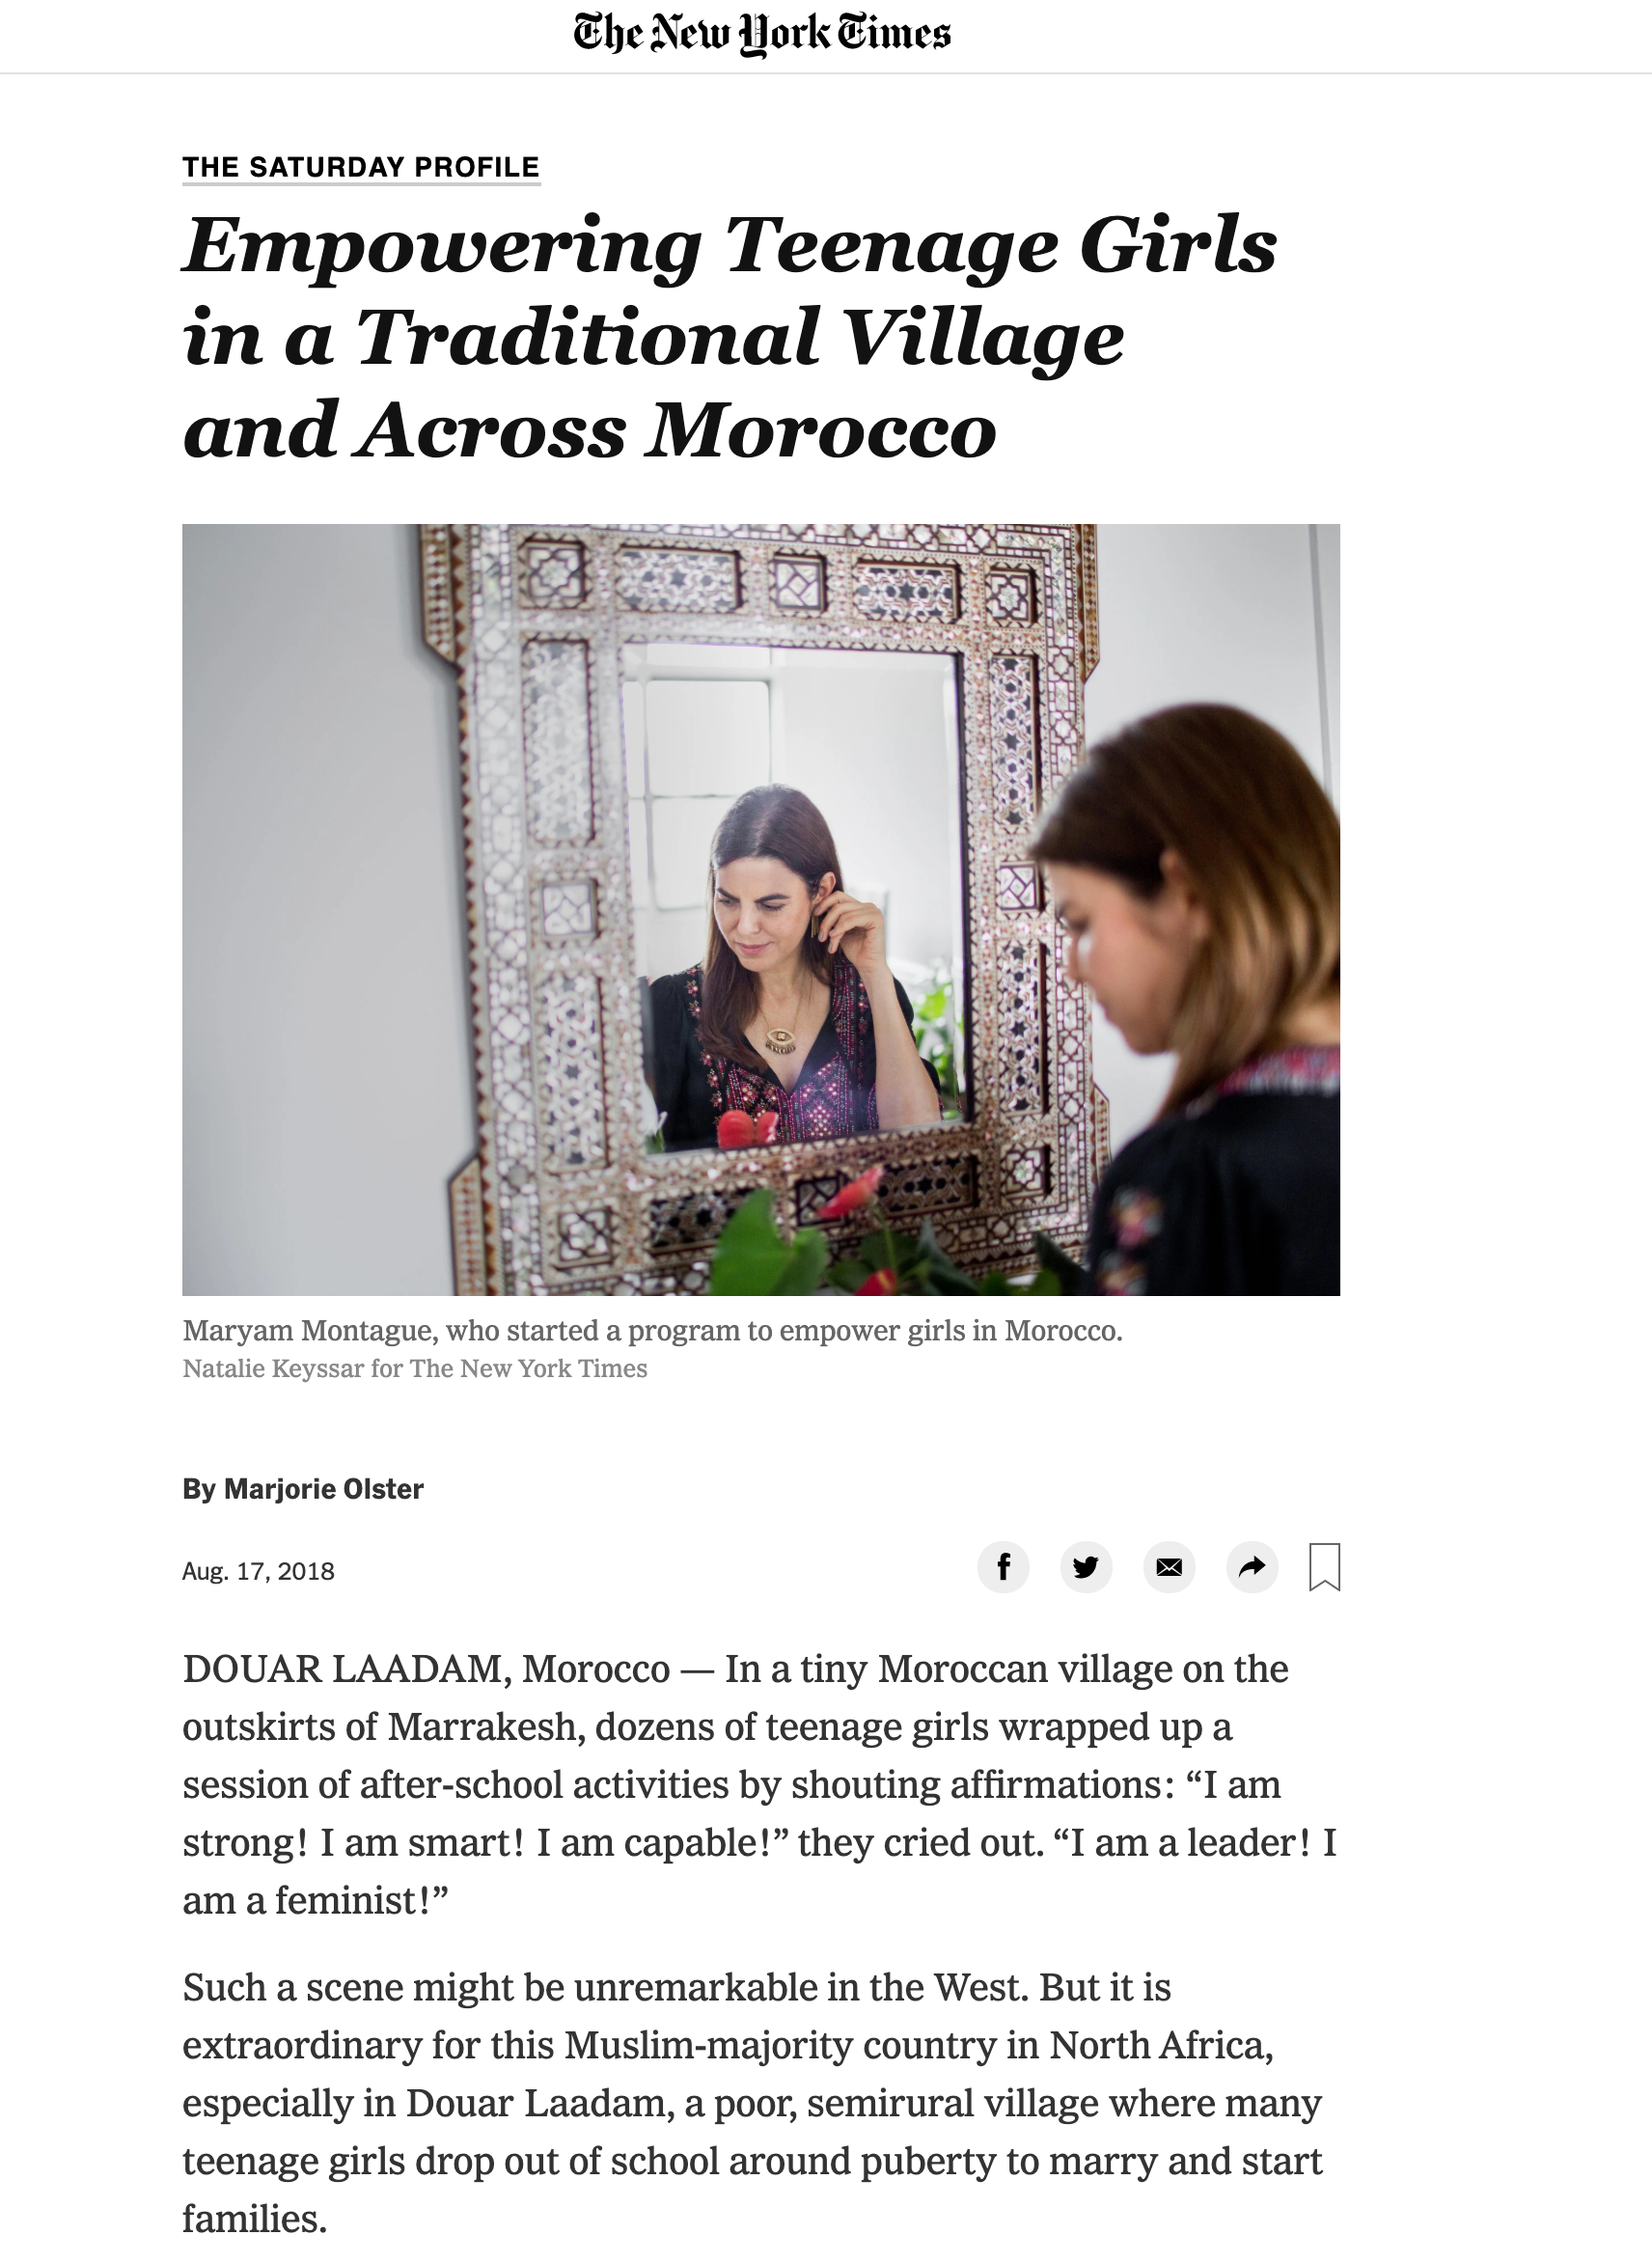 Empowering Teenage Girls in a Traditional Village and Across Morocco - The New York Times.png